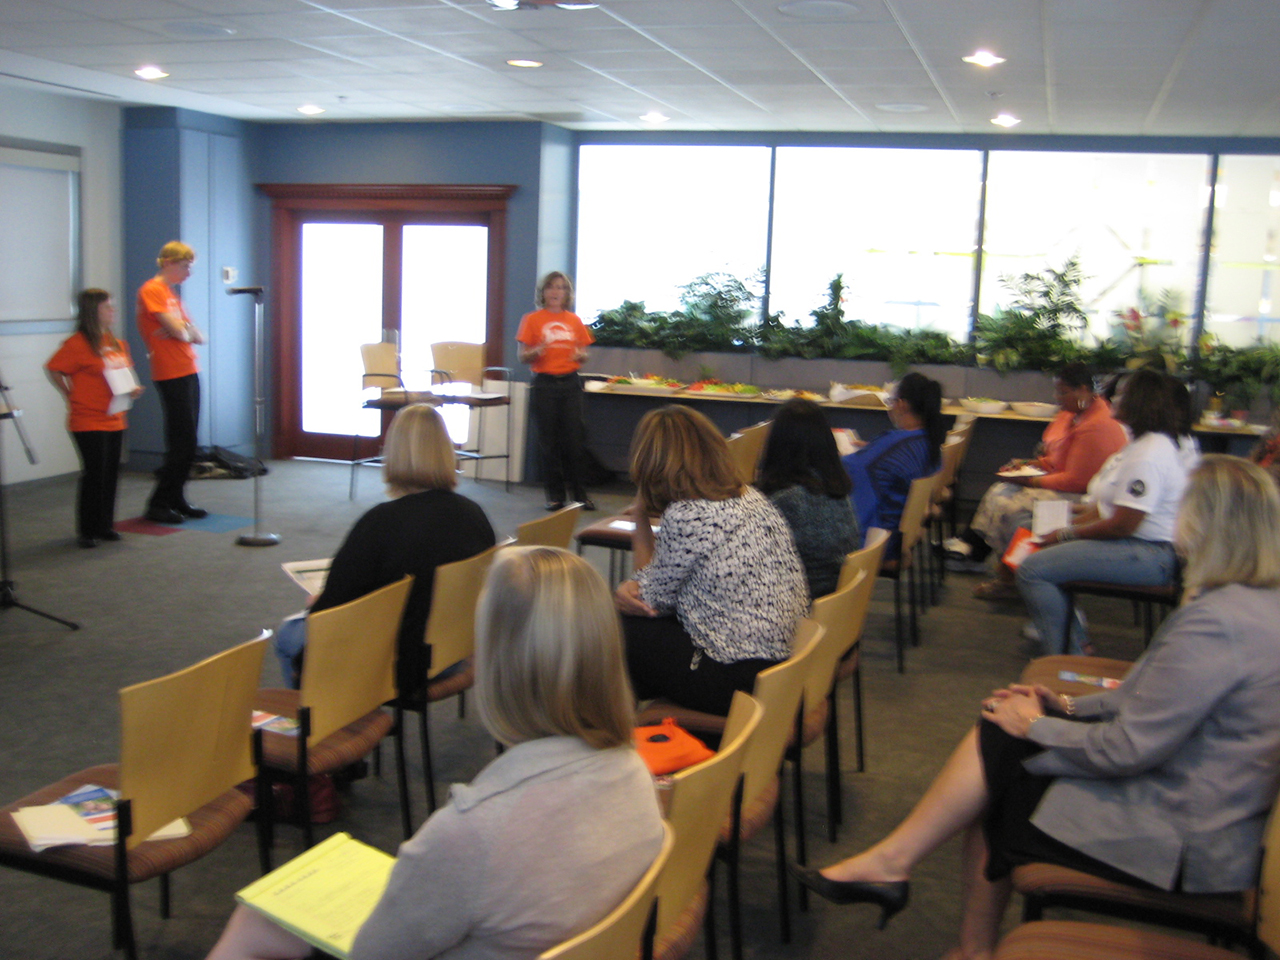 A photo shows the Northern Trust Bank staff watching a presentation presented by the Disability Awareness Players.